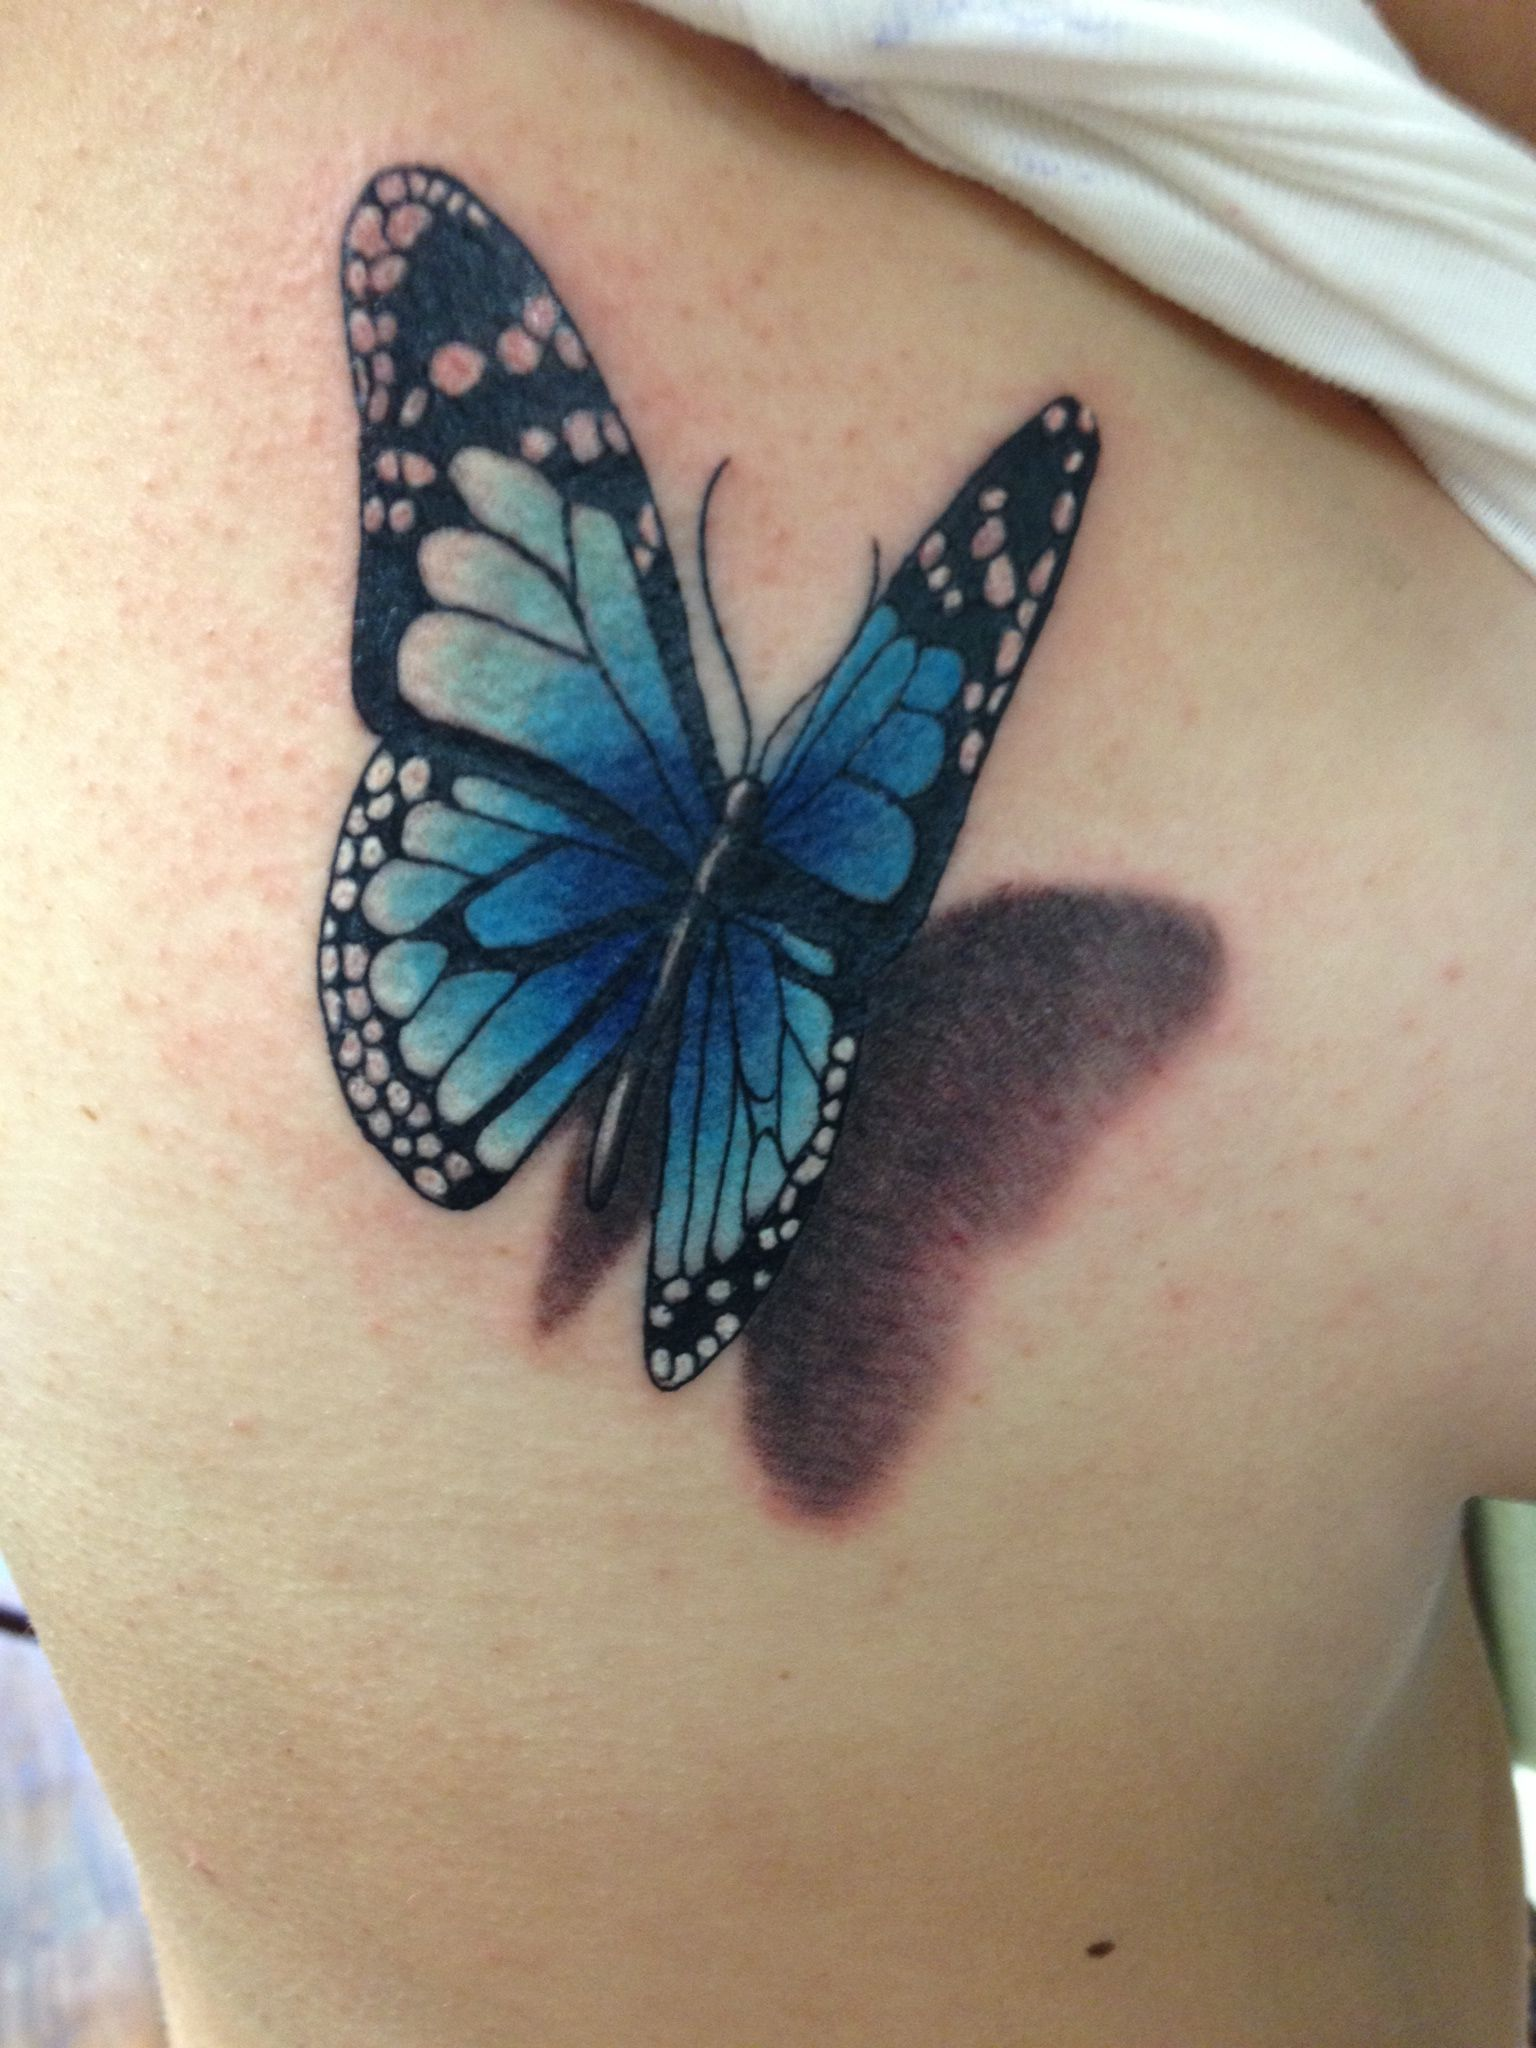 3D Butterfly Tattoo Courtesy of Chris at Pretty in Ink